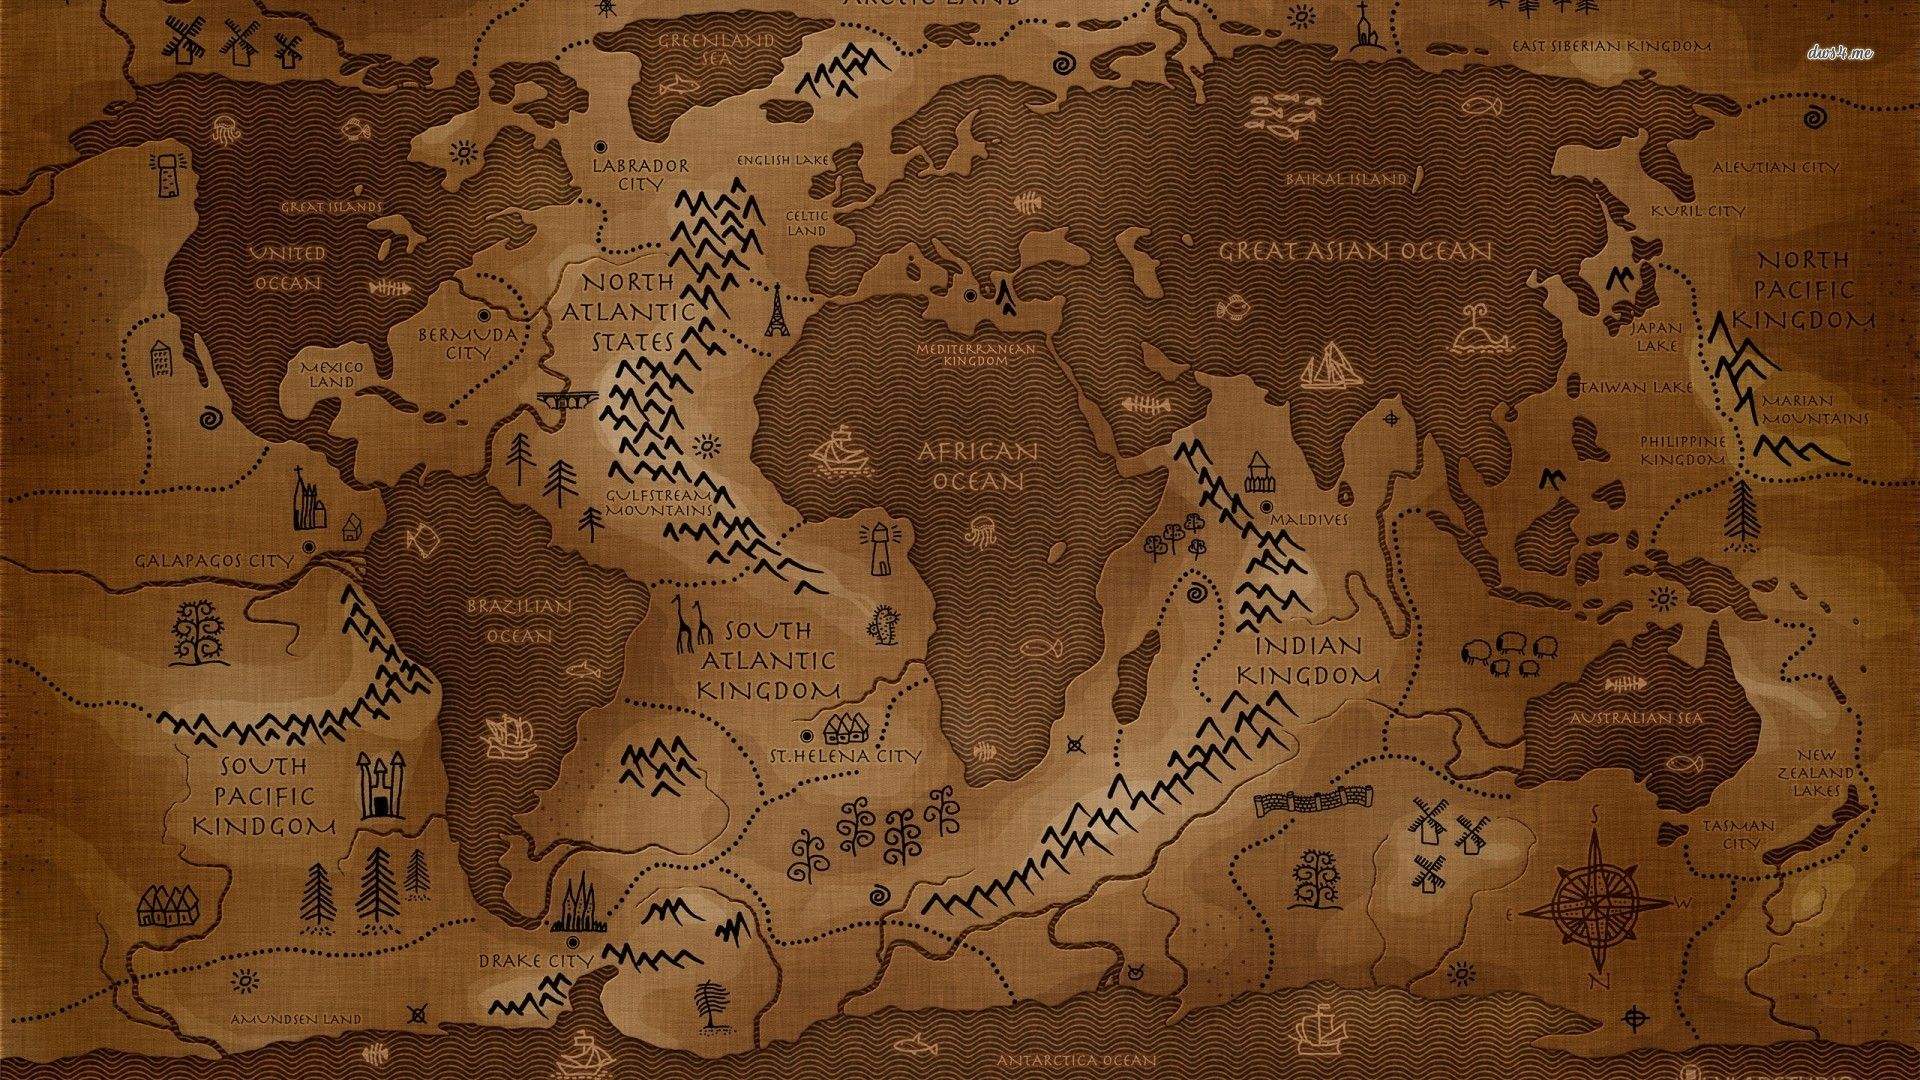 Game of Thrones Map Wallpapers - Top Free Game of Thrones ... Game Of Thrones Land Map on vikings land map, ice and fire world map, lost land map, valyria map, naruto land map, gameof thrones map, uwharrie game lands map, washington dnr land map, michigan state land map, wyoming state land map, rio rancho land map, winterfell map, harry potter land map, united states land map, astapor map, colorado state land map, crown of thrones map, hopi land map, king of thrones map, star wars land map,